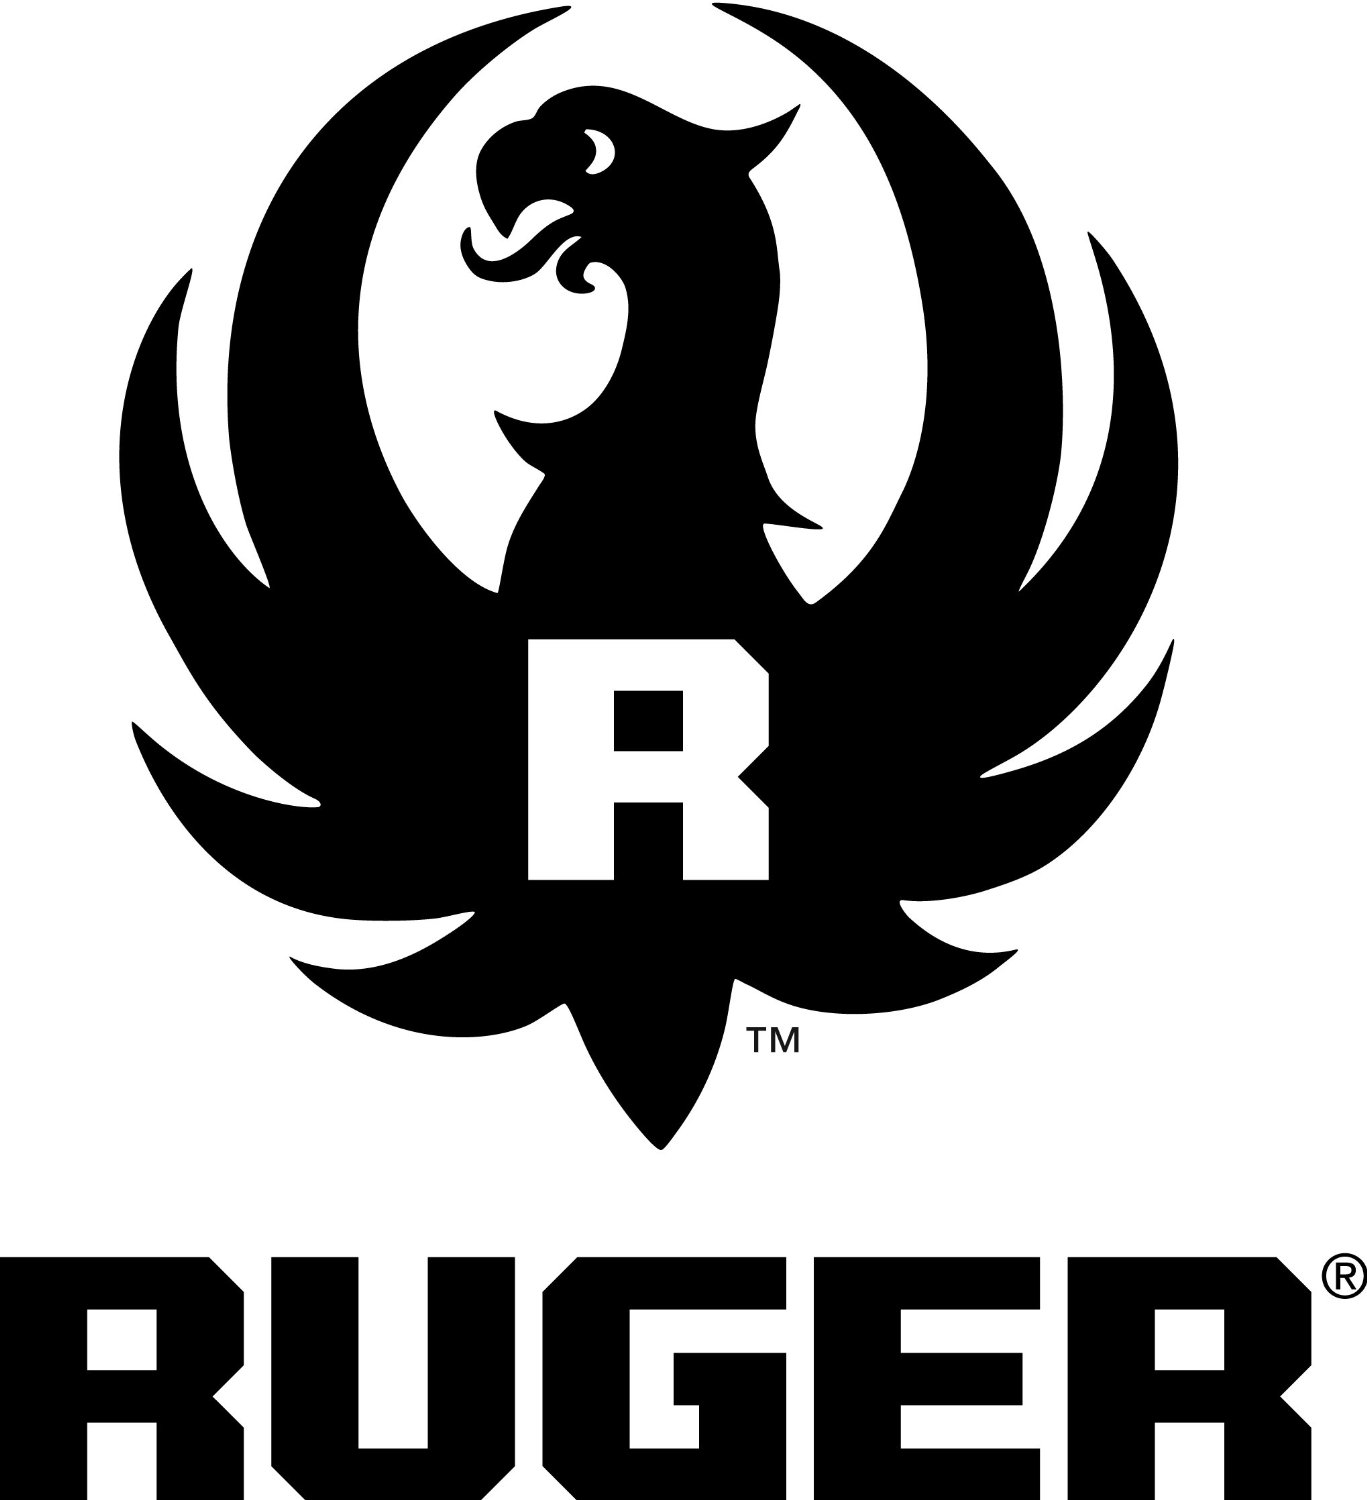 an image of ruger logo